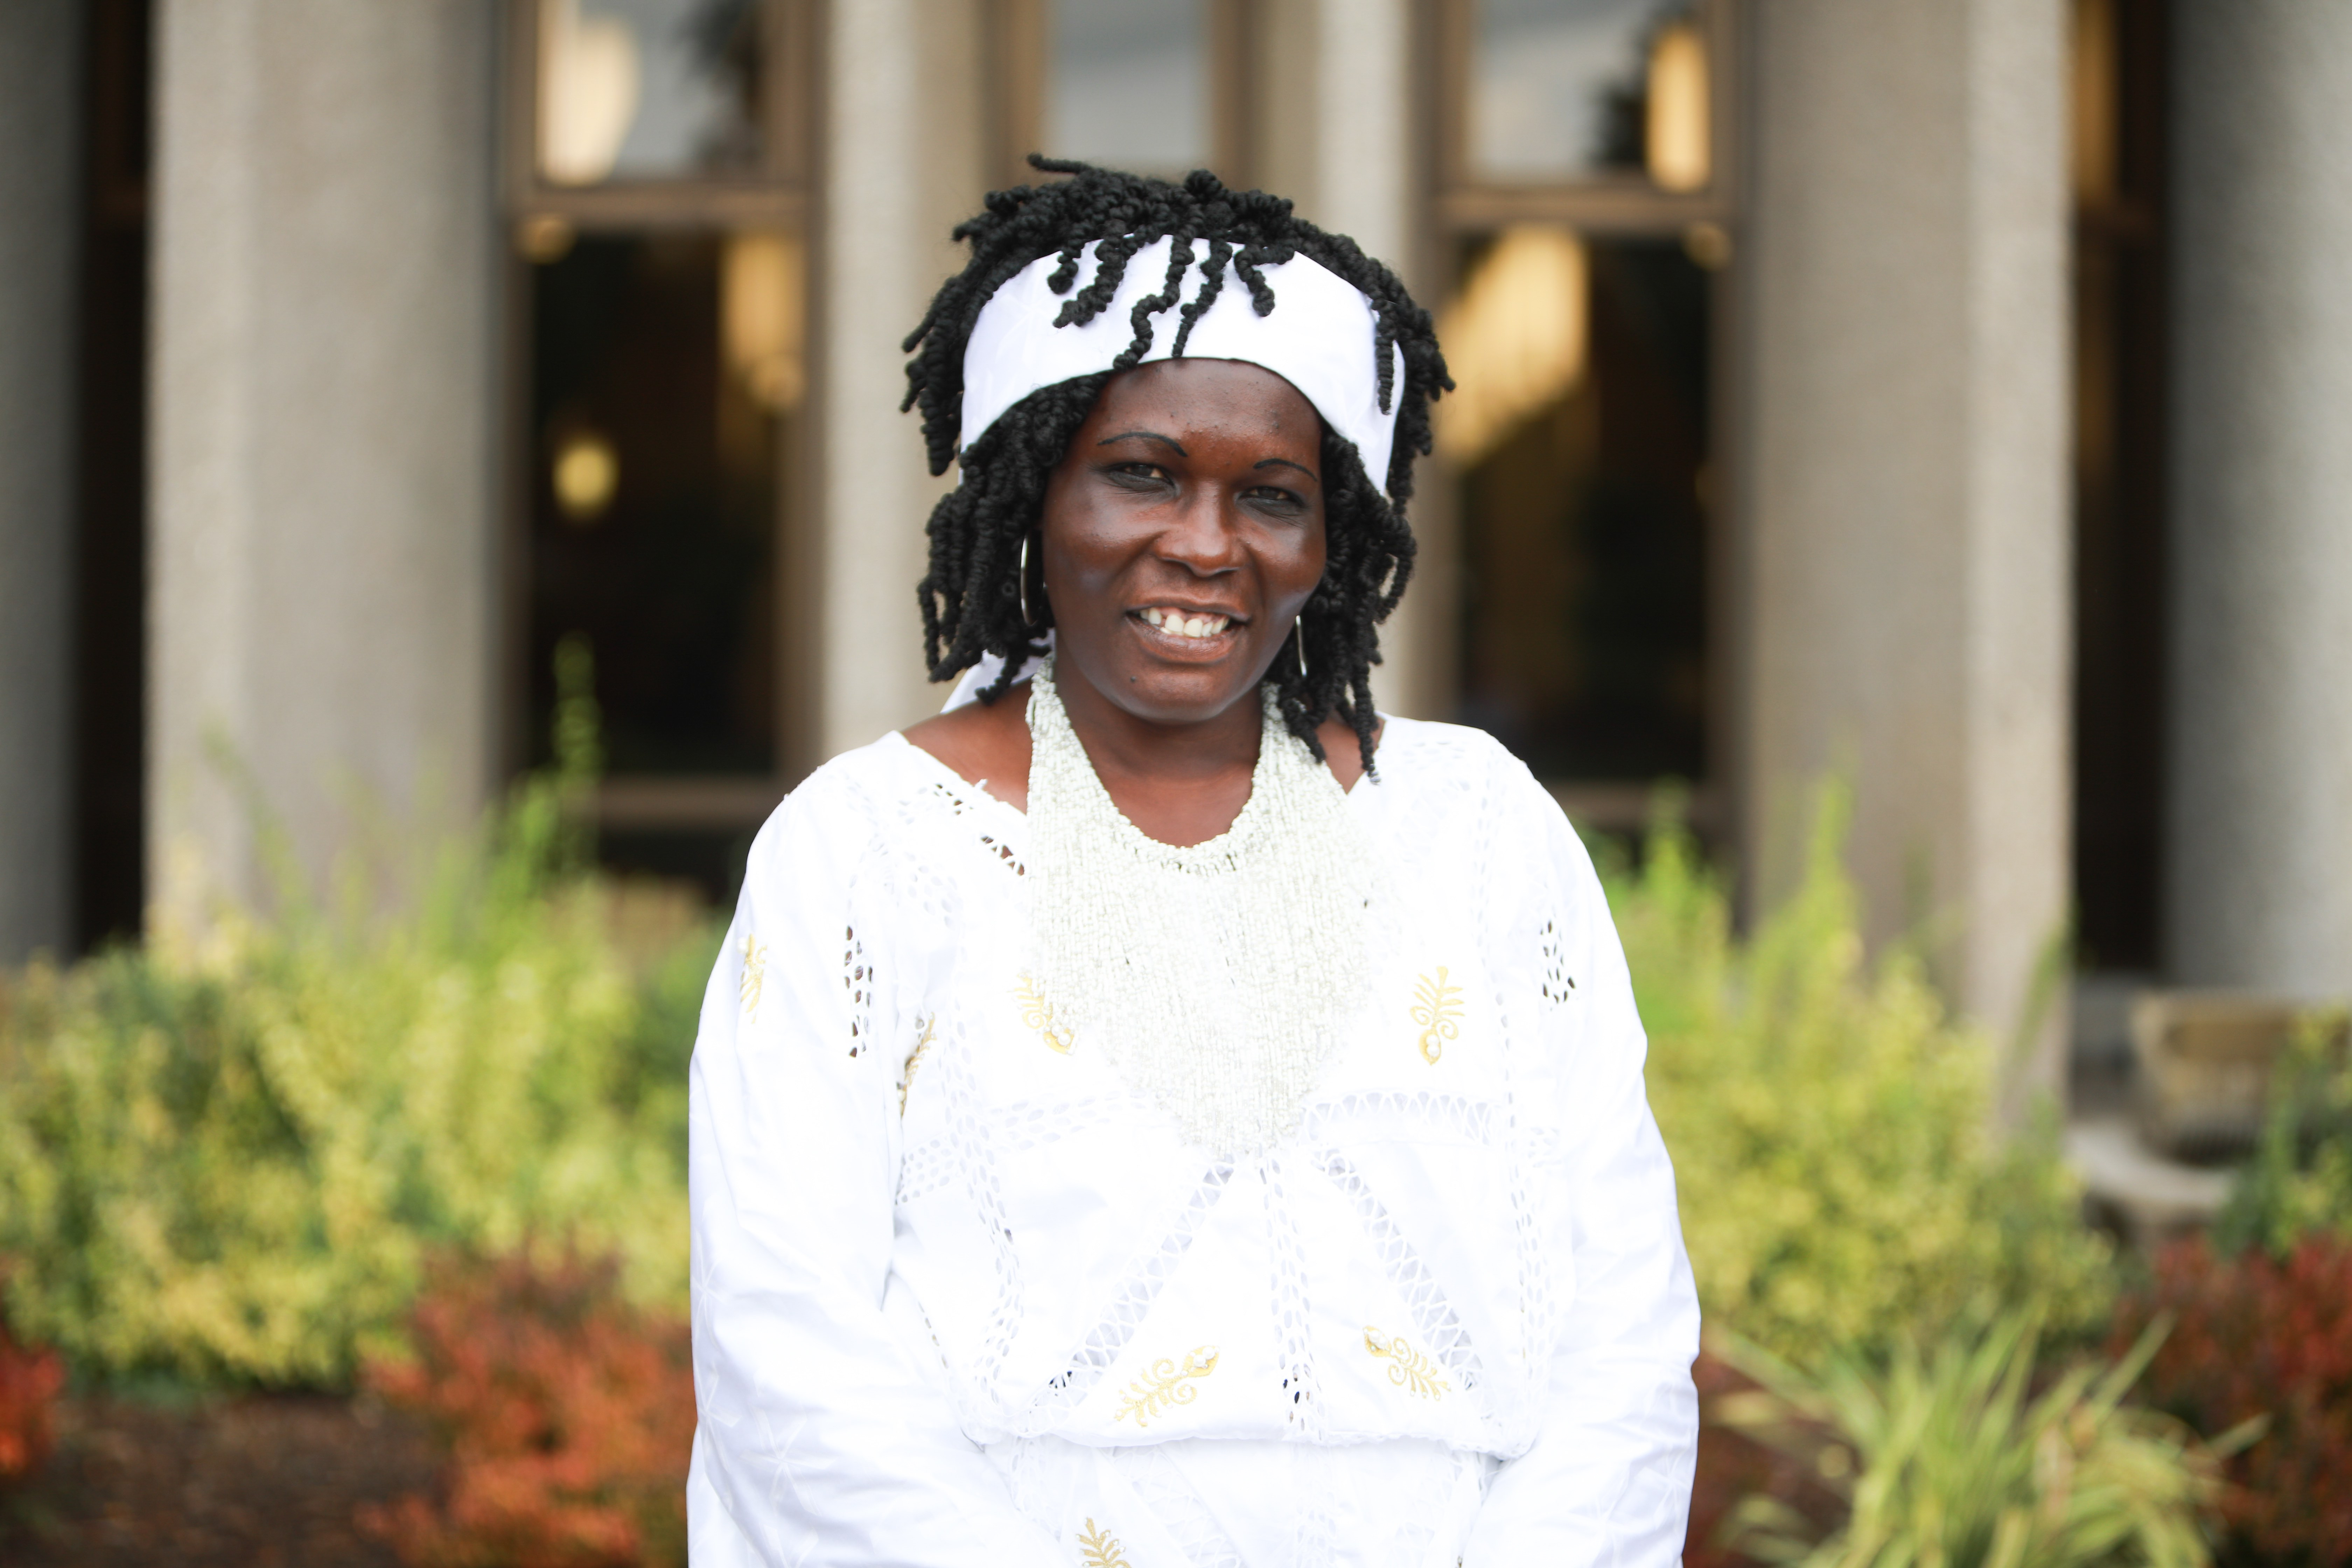 Karak Miakol, a native of South Sudan and a Latter-day Saint convert, has dedicated her life to providing educational and business opportunities to women in East Africa.